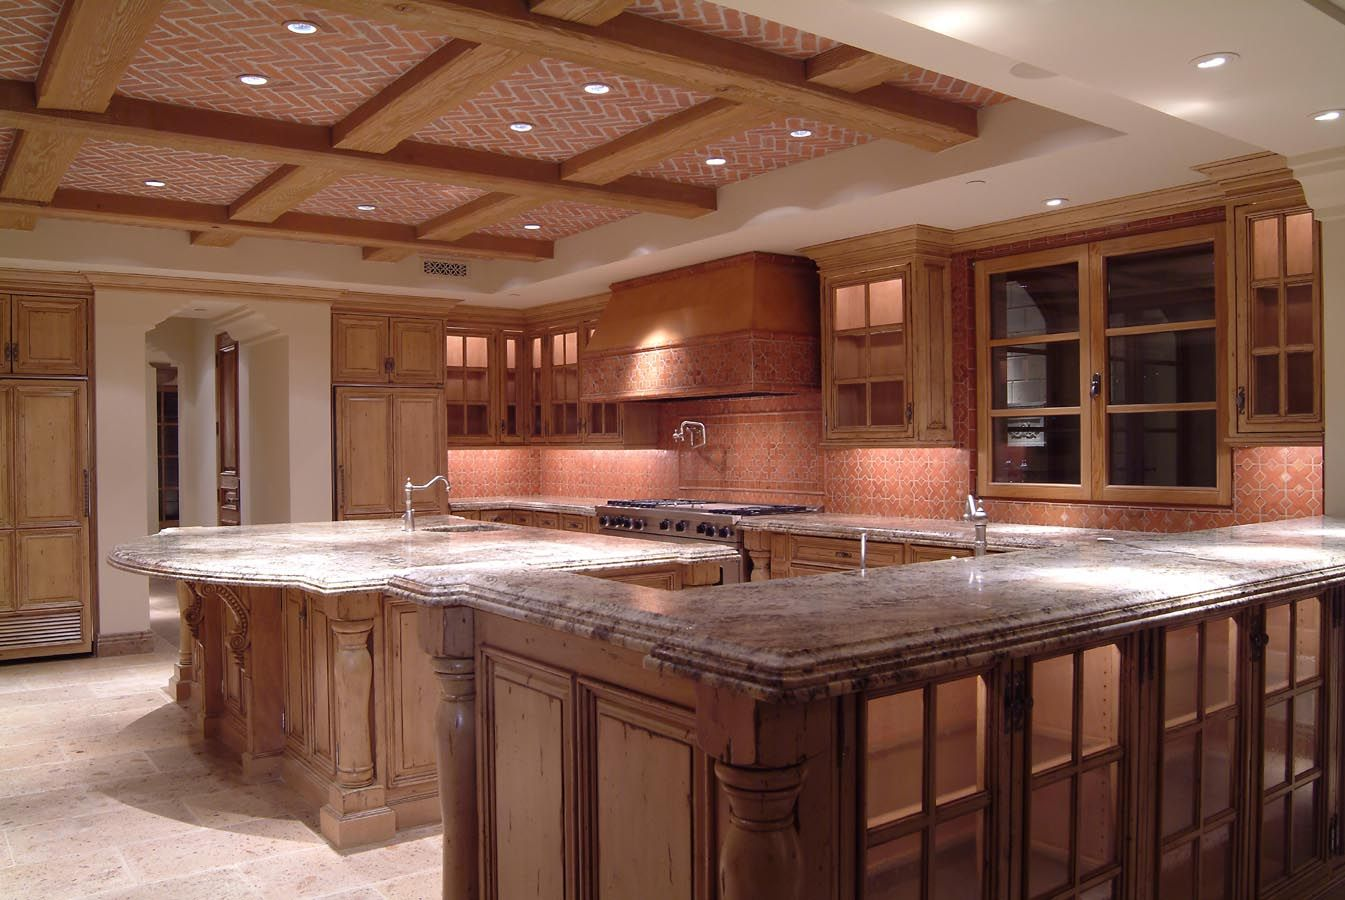 Ultra HighEnd Custom Kitchen Cabinetry High End Cabinetry By - Kitchen cabinets high end